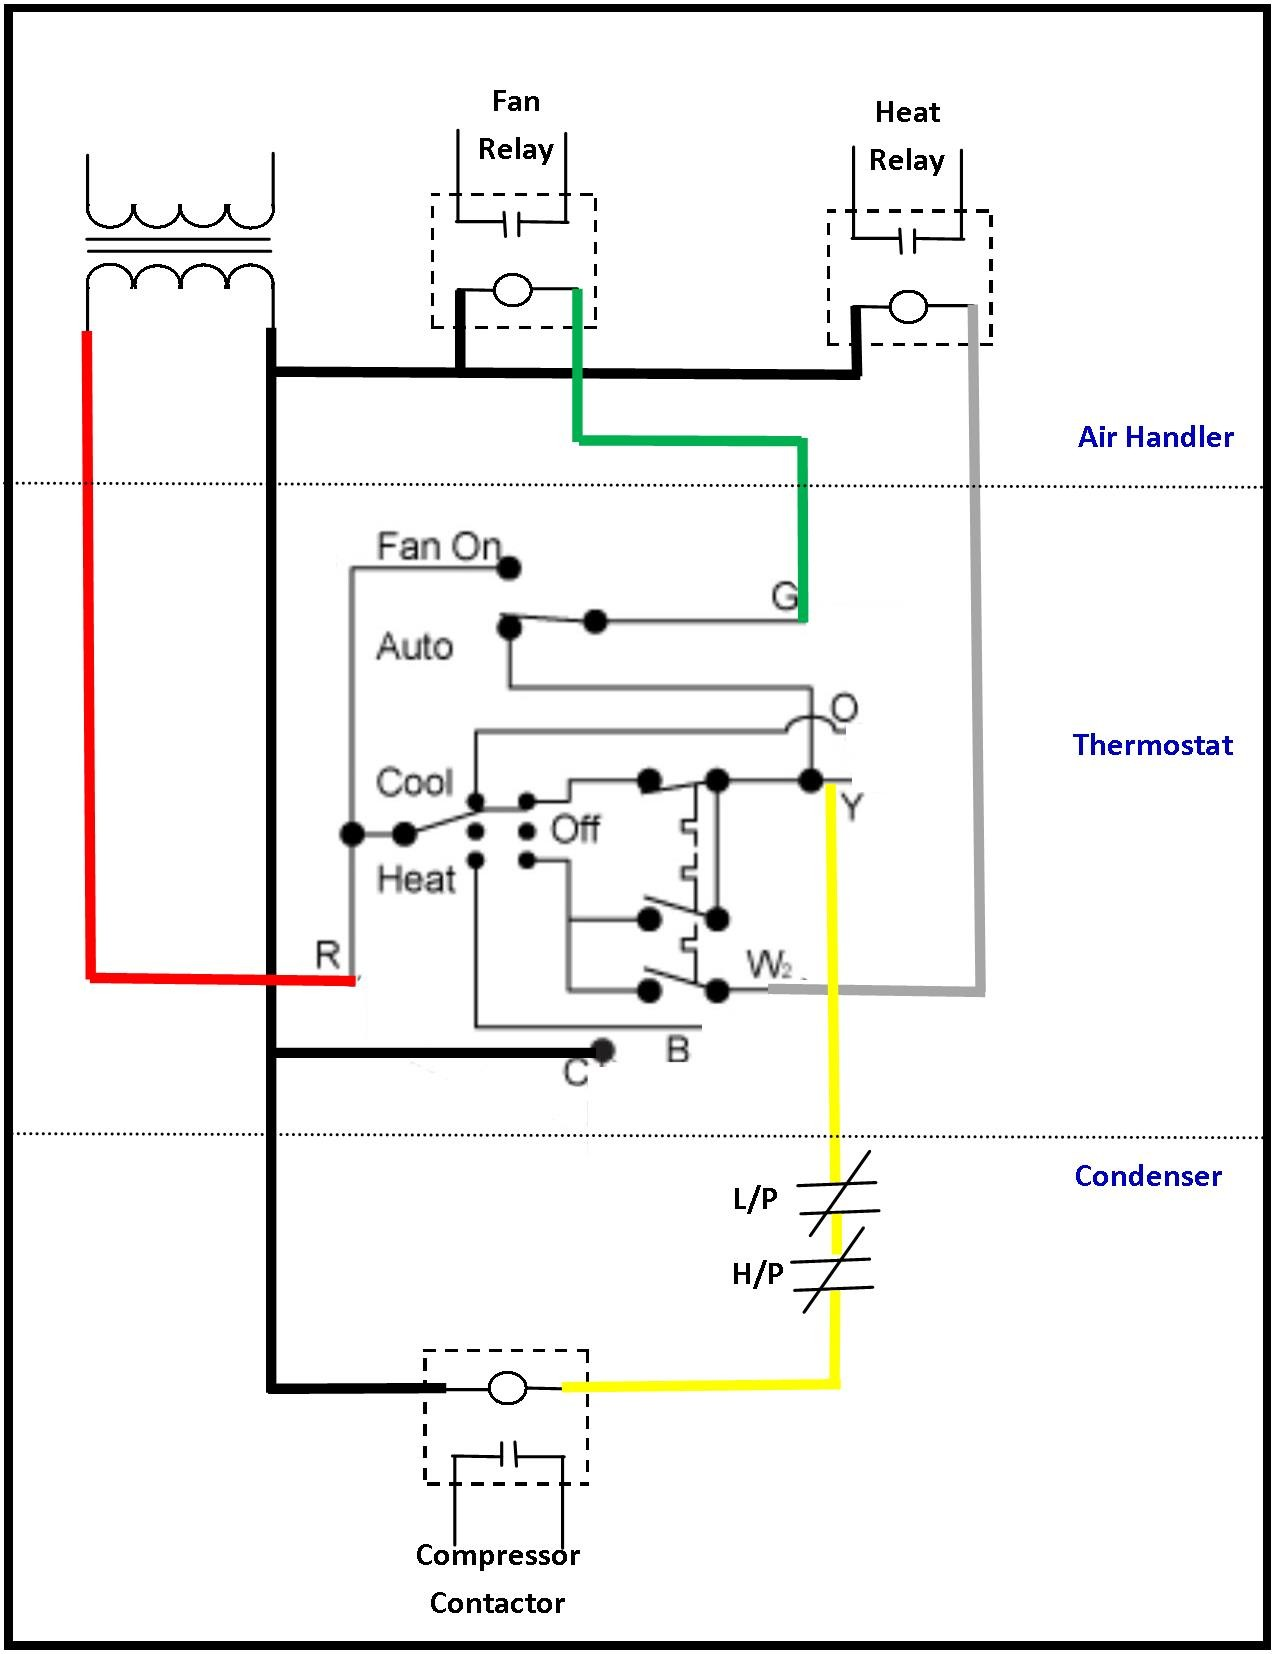 Furnace Transformer Wiring Diagram Wiring Diagram Besides Low Voltage Wiring Diagrams for Air Handler Of Furnace Transformer Wiring Diagram